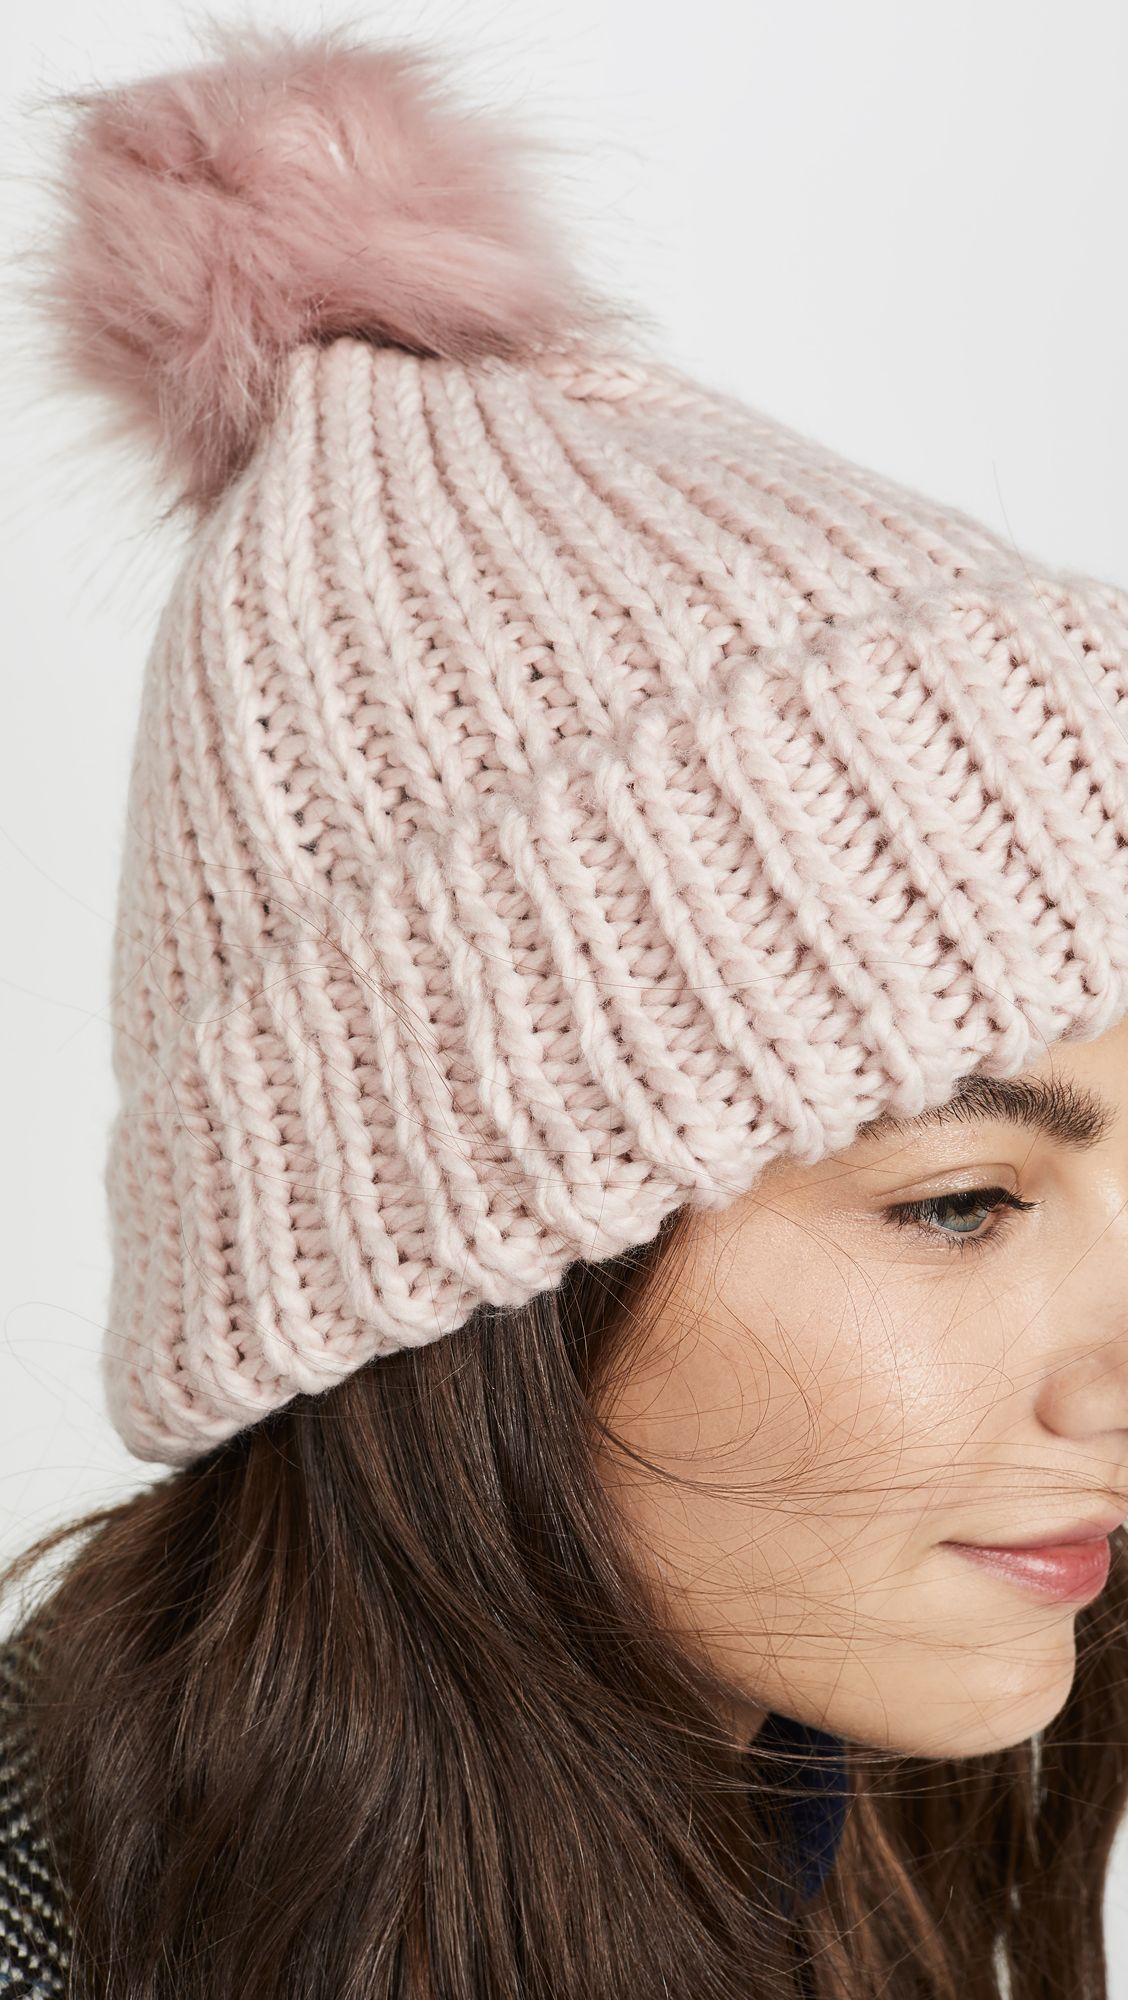 Hat Attack Tahoe Pom Pom Hat SAVE UP TO 40 SURPRISE SALE #Sponsored , #Ad, #Tahoe, #Pom, #Hat, #Attack, #SURPRISE